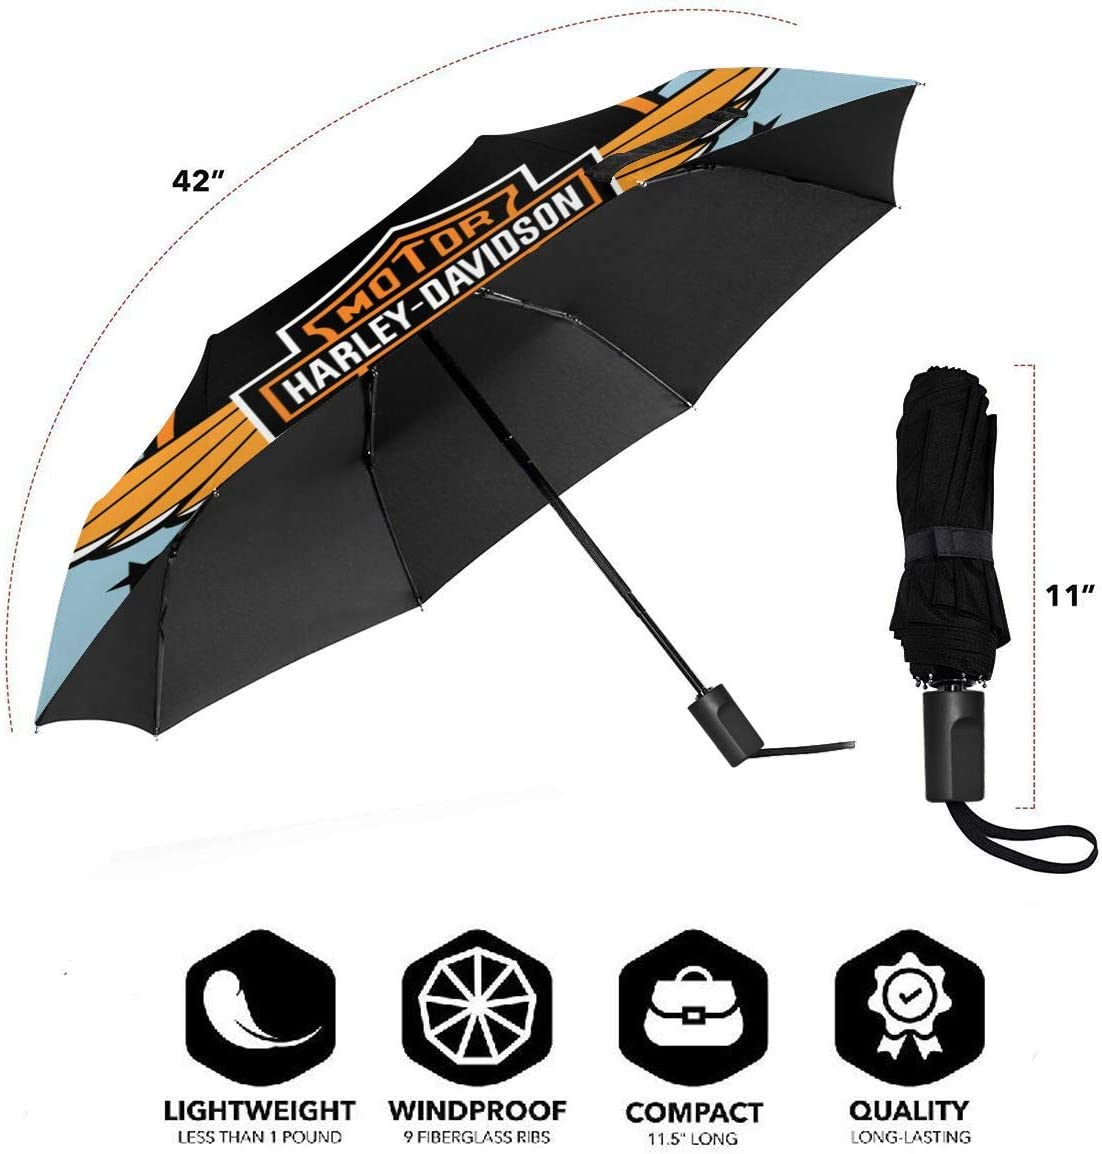 Lovesofun Portable Automatic Umbrella Harley David-Son Compact Auto Open Close Folding Business Umbrellas UV Protection Automatic Tri-fold Umbrella for Men and Women